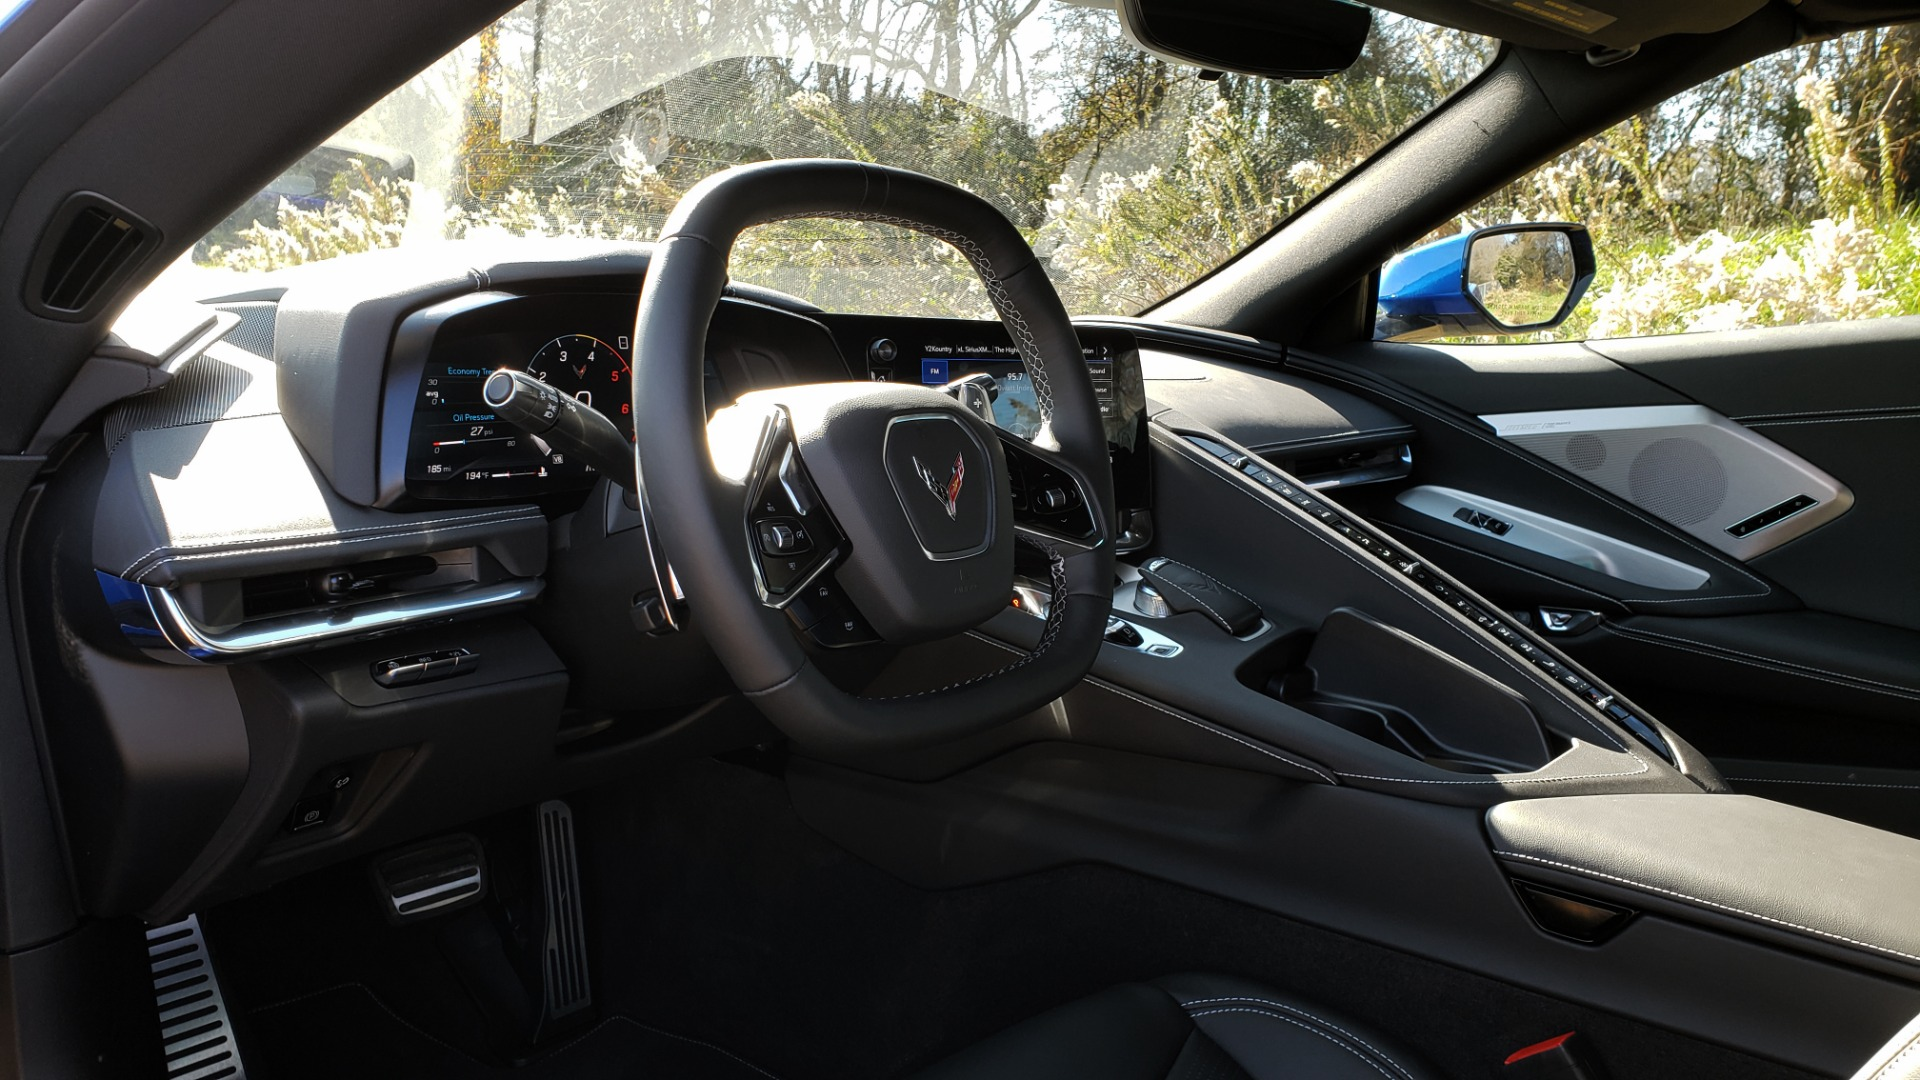 Used 2020 Chevrolet C8 CORVETTE STINGRAY 2LT COUPE / NAV / HUD / BOSE / GT2 SEATS / FRONT LIFT / REARVIEW for sale Sold at Formula Imports in Charlotte NC 28227 61